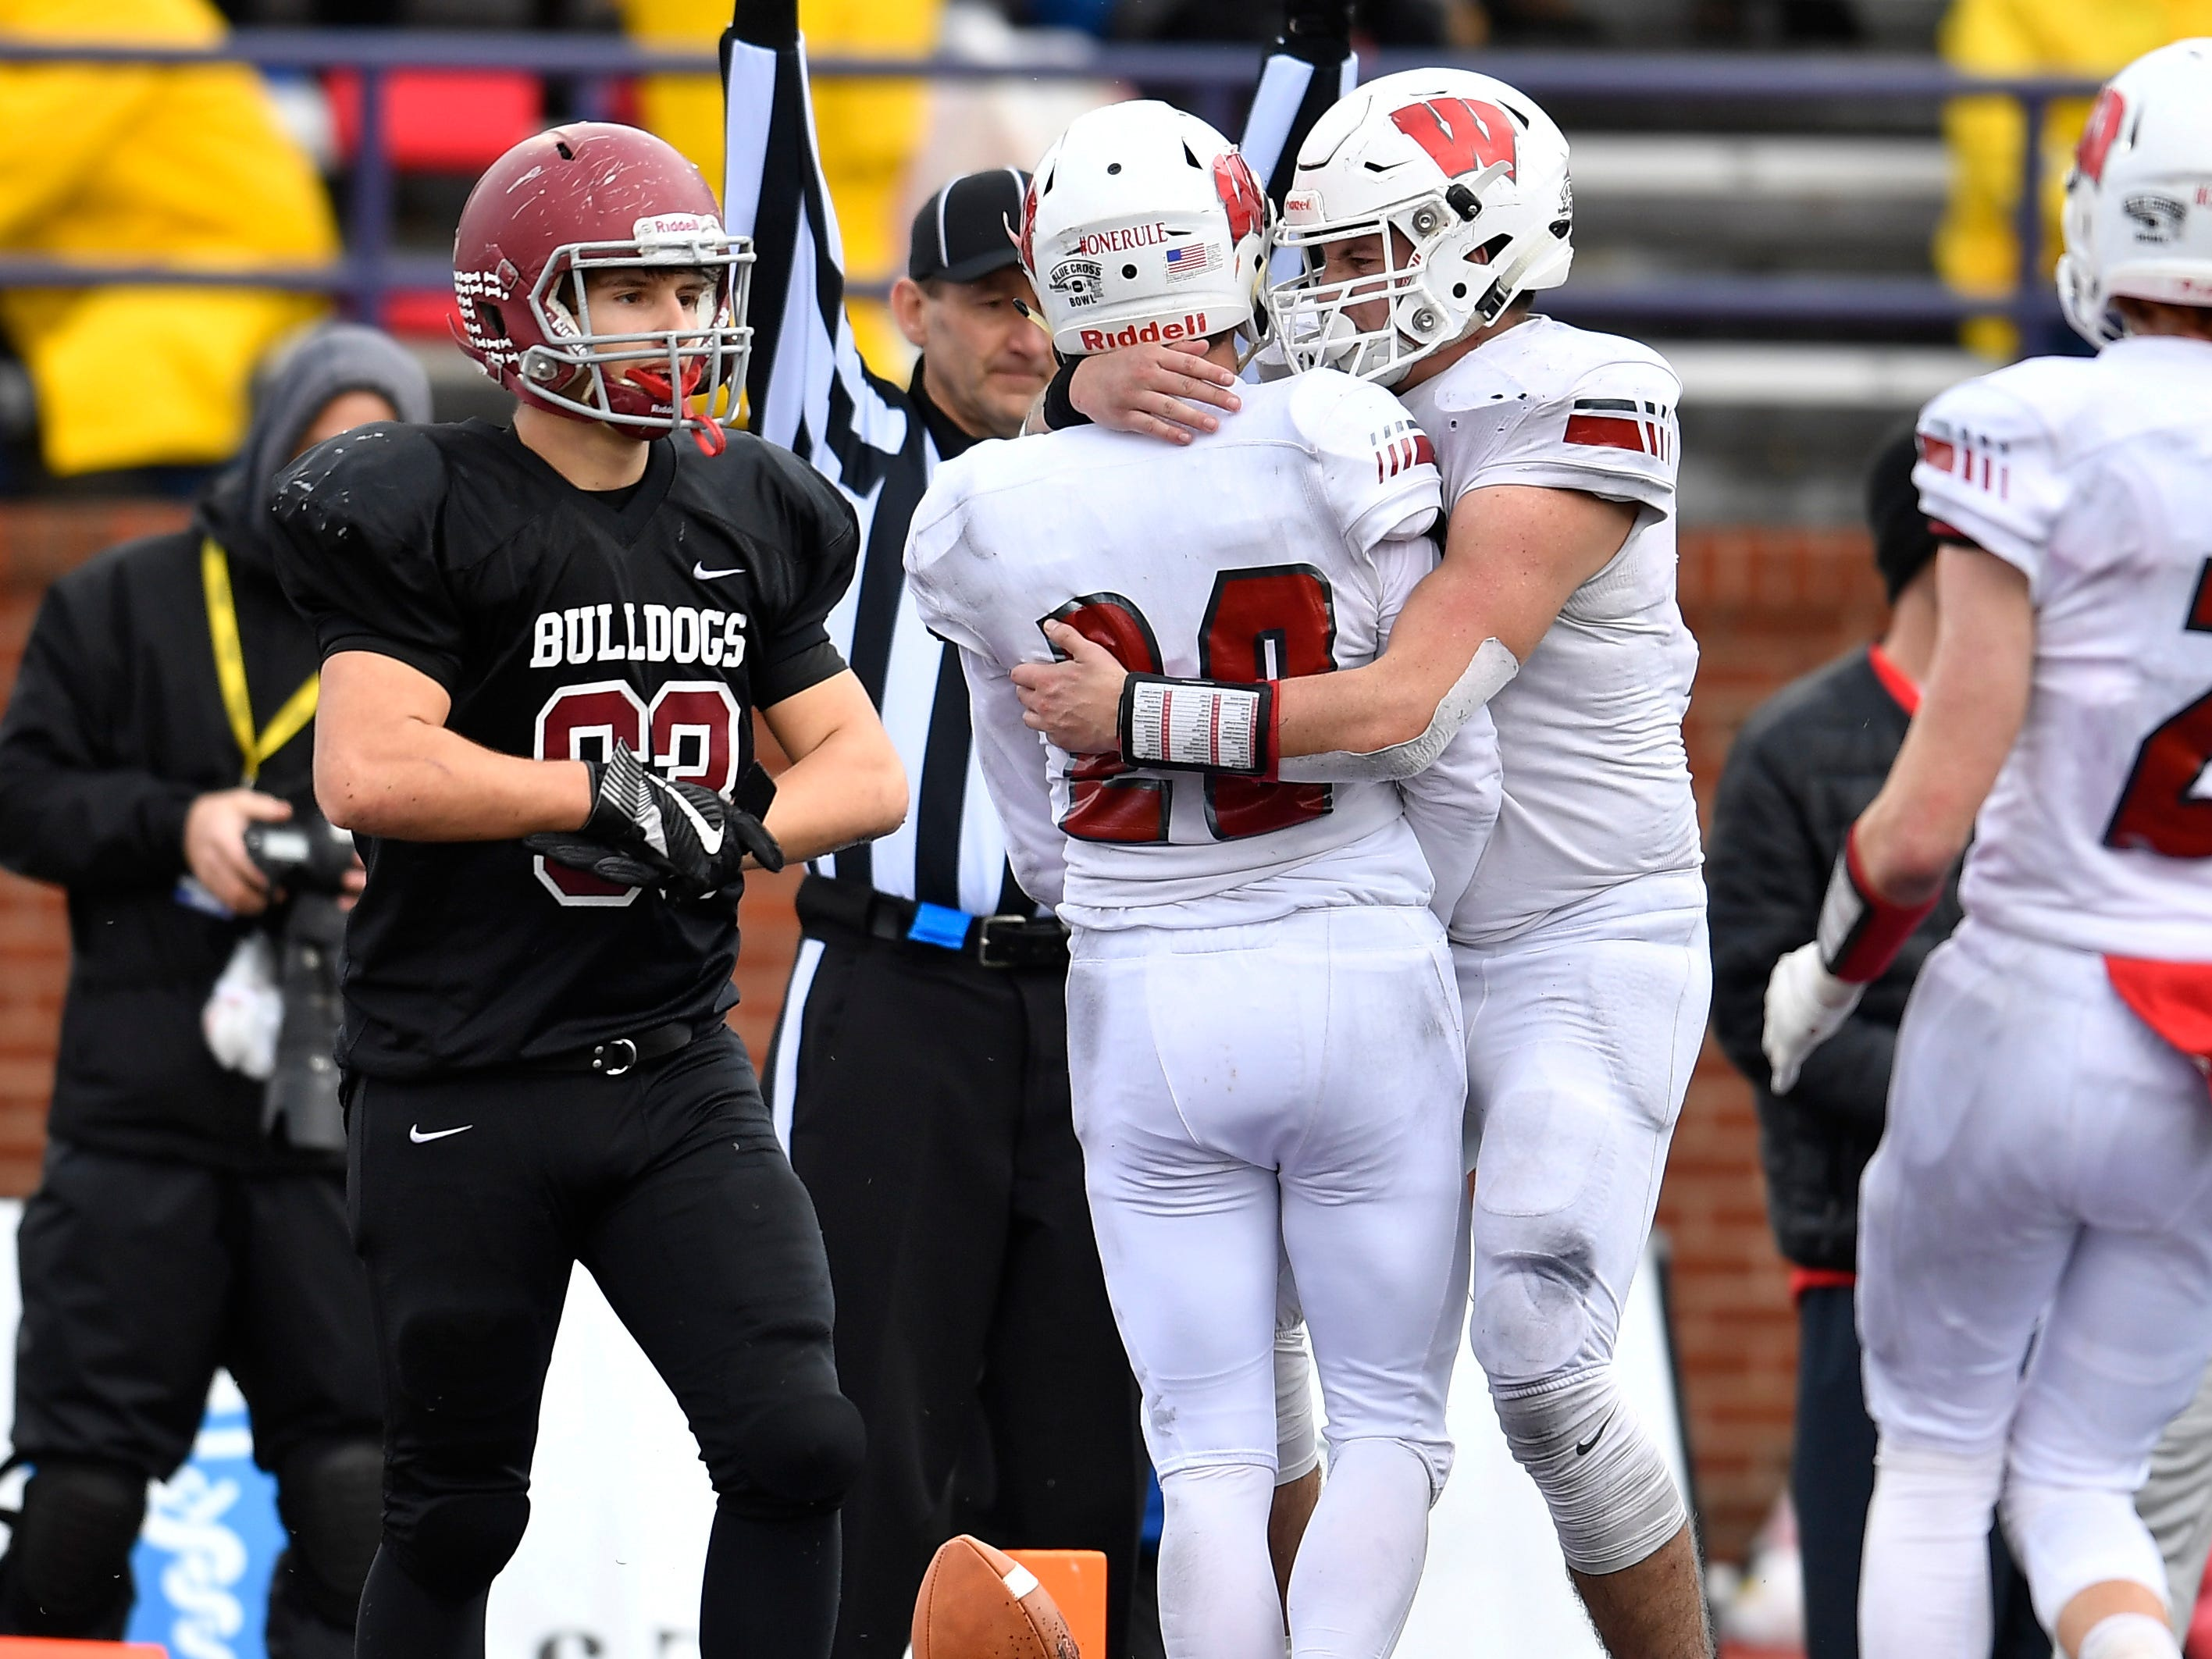 Whitwell wide receiver Tanner Stewart (20) is congratulated after his fourth-quarter touchdown in the Class I-A BlueCross Bowl state championship at Tennessee Tech's Tucker Stadium in Cookeville, Tenn., on Saturday, Dec. 1, 2018.